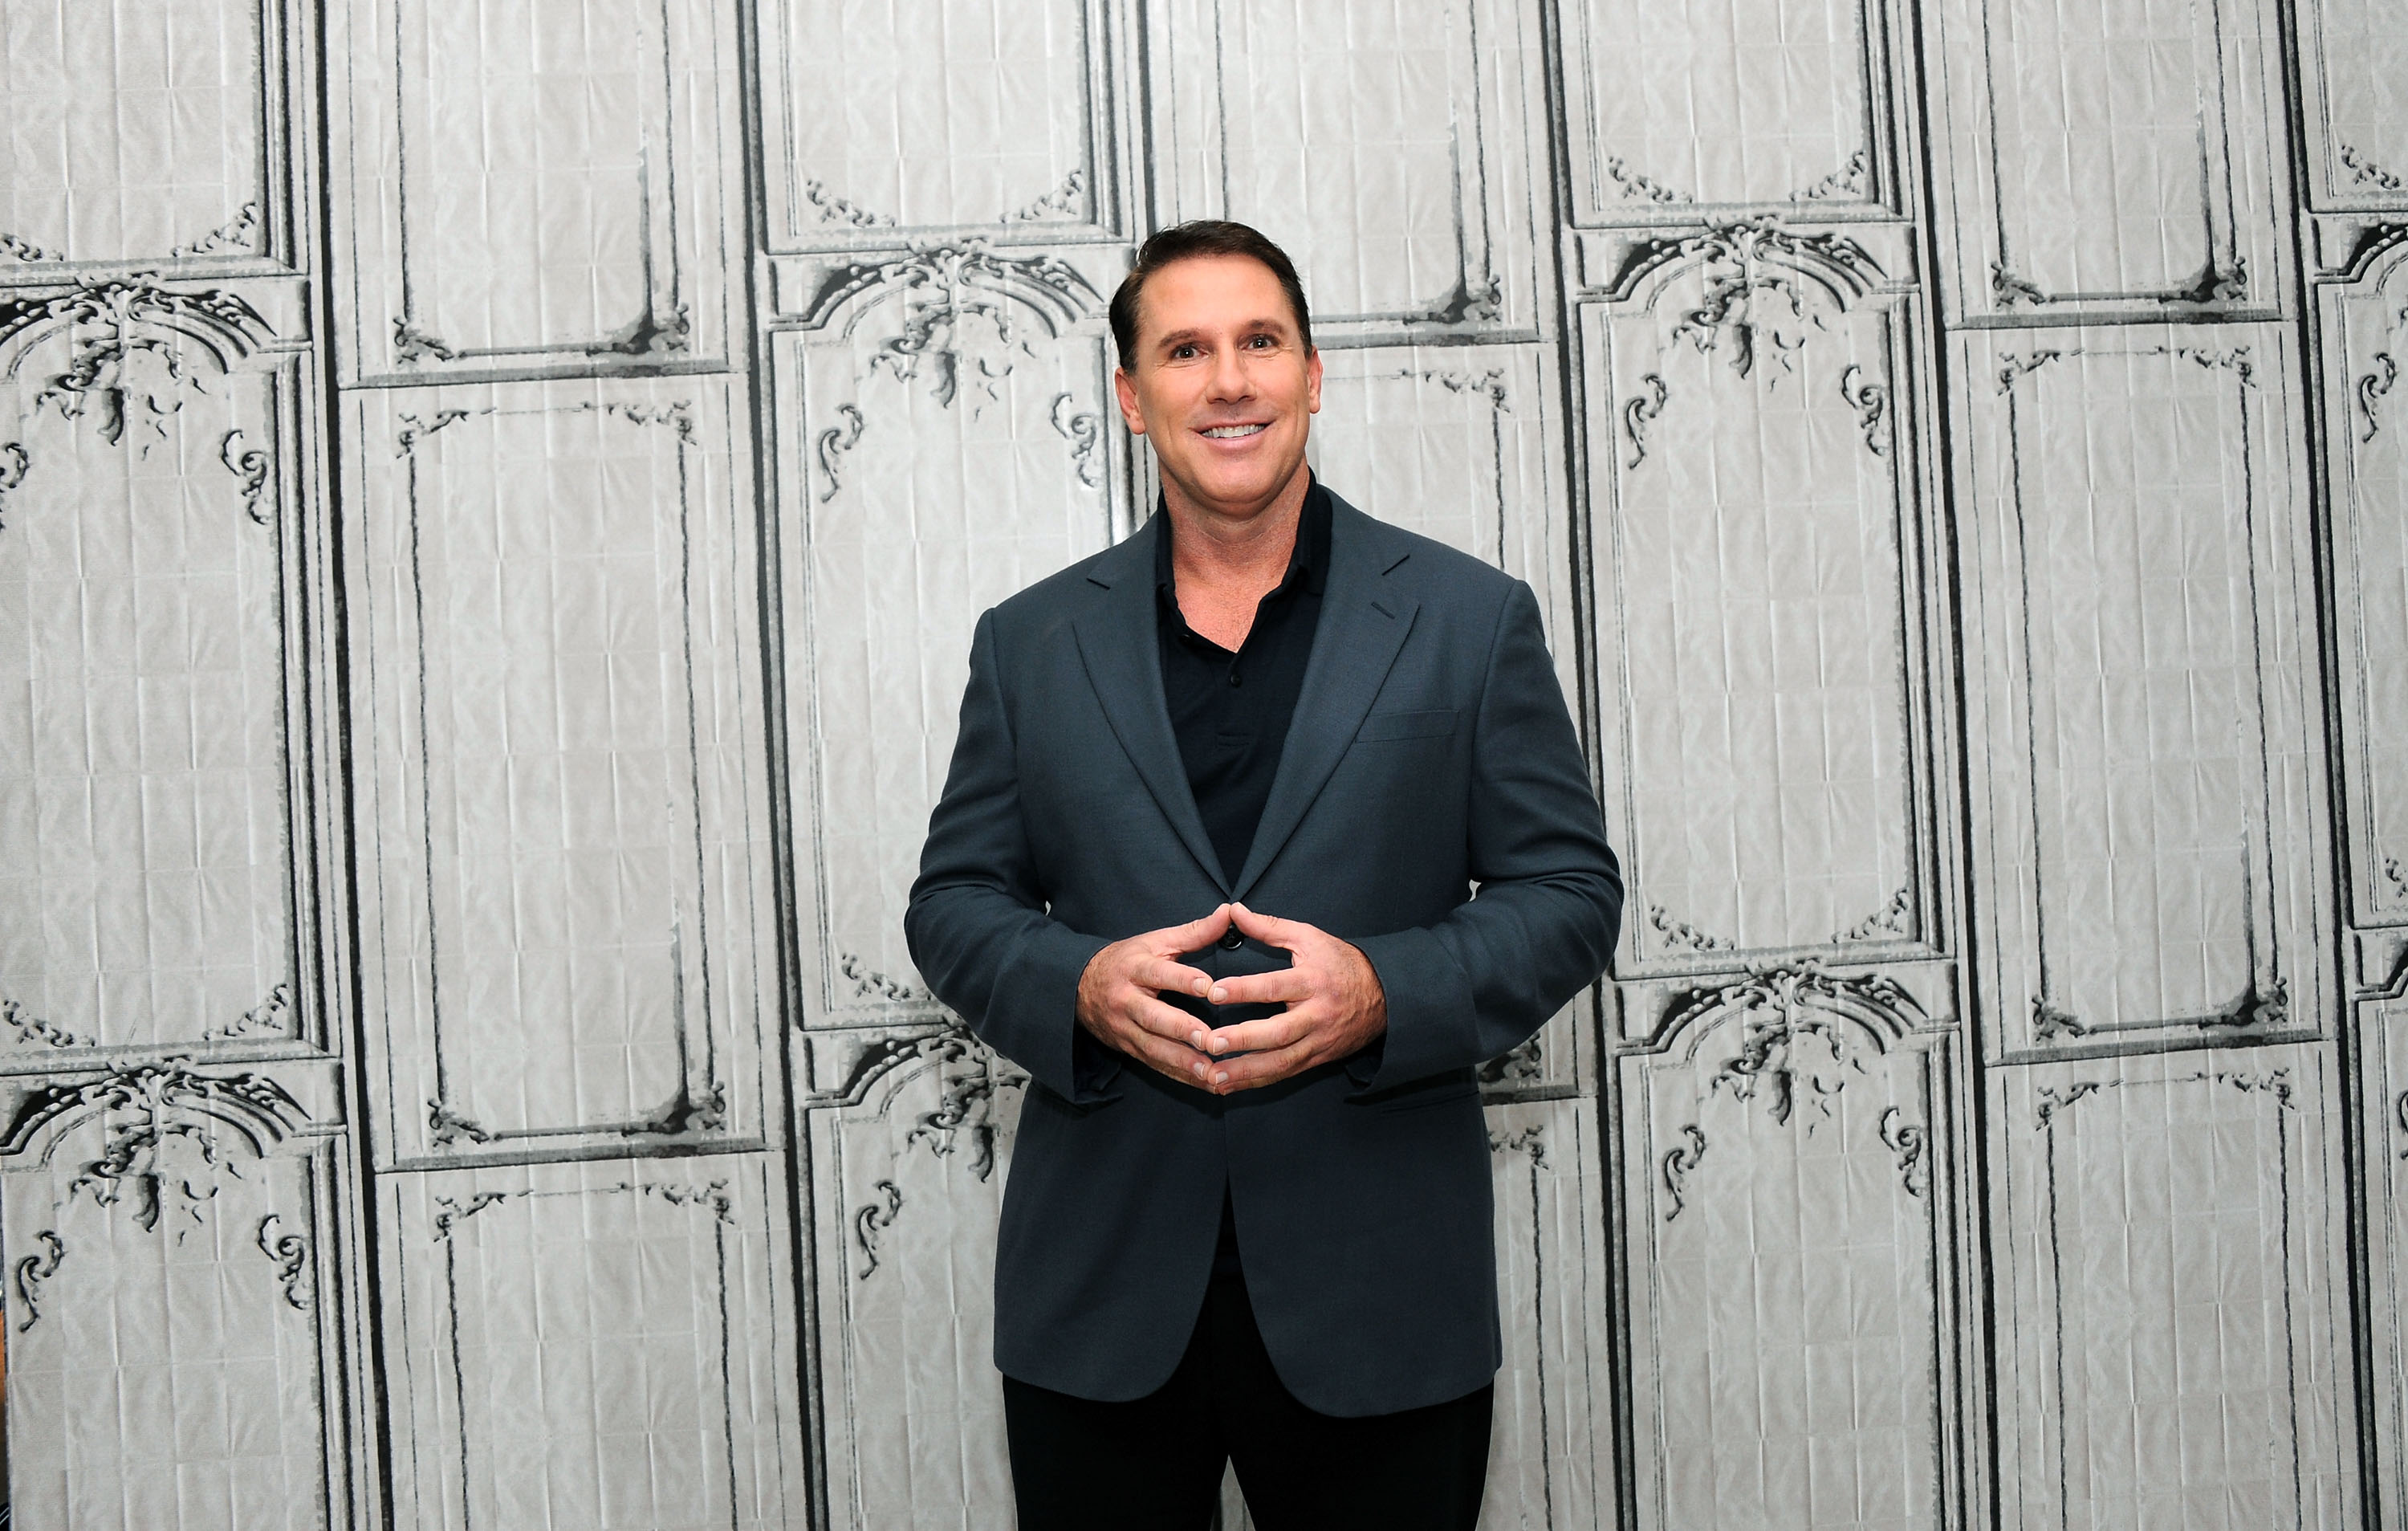 Writer Nicholas Sparks at AOL Studios In New York on October 15, 2015 in New York City.